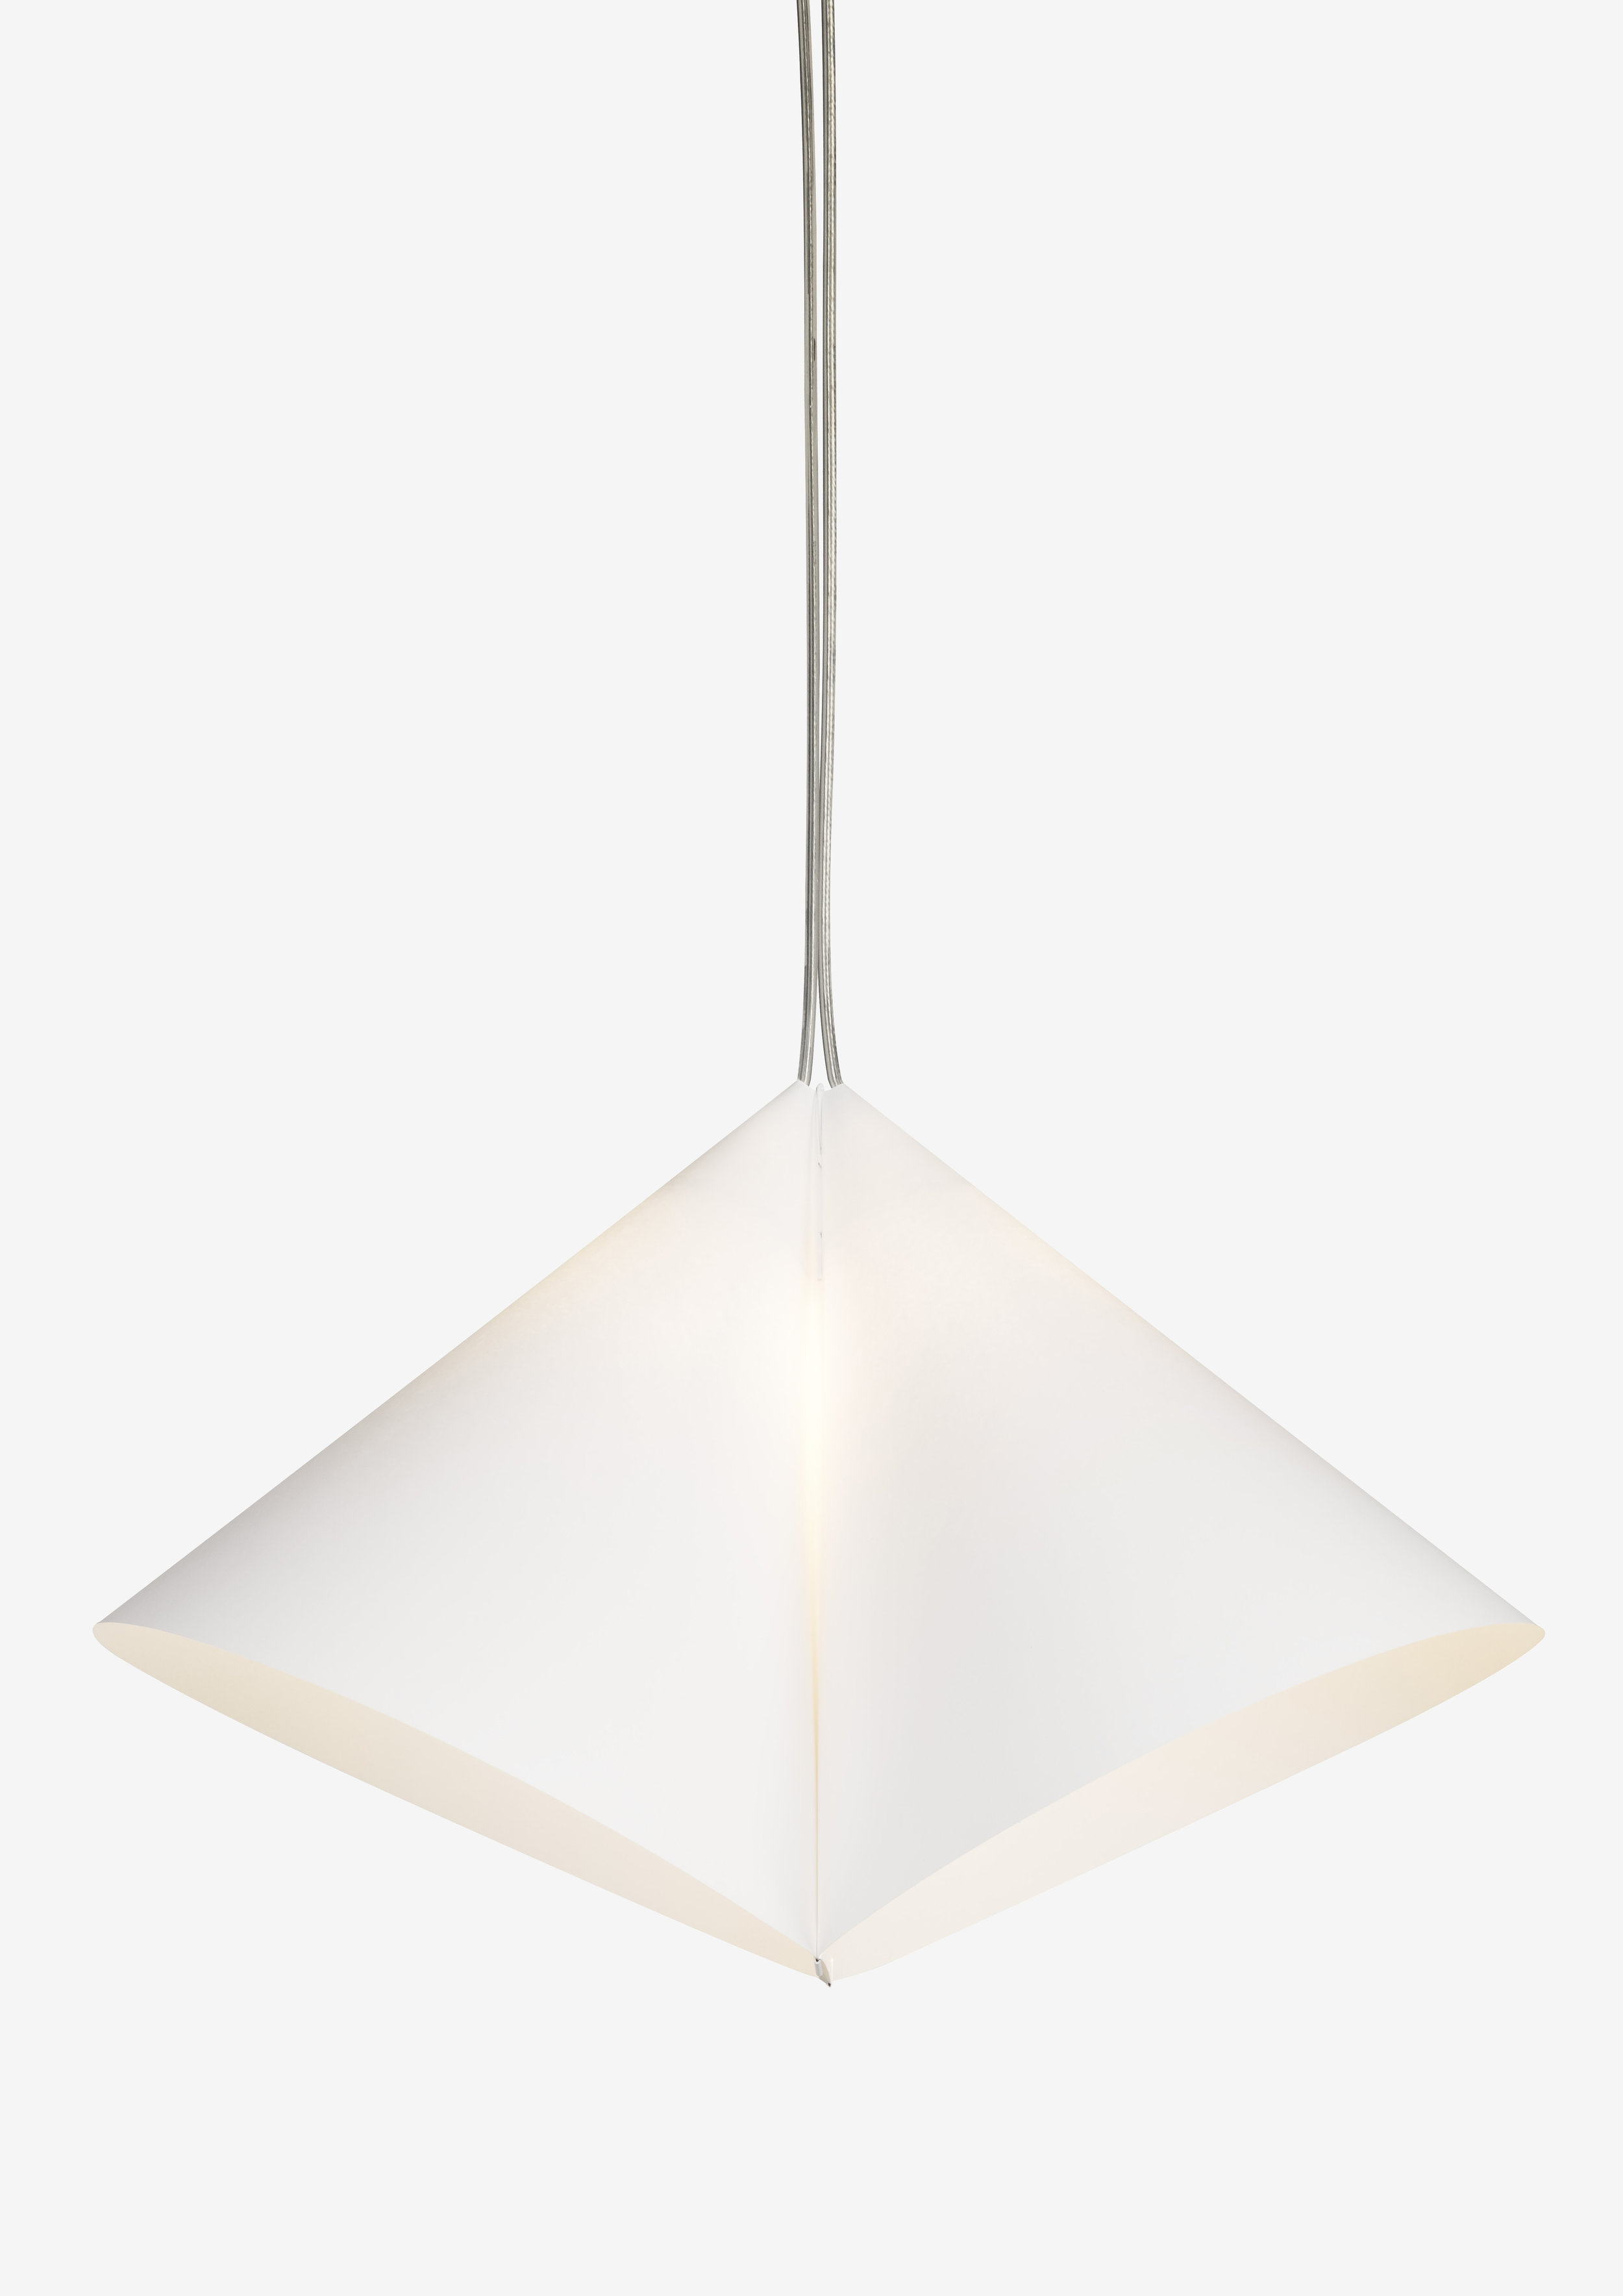 Örsjö - Having celebrated their 70th anniversary in 2018, Swedish lighting brand Örsjö continue to embody their values of combining skilled craftspersonship with contemporary design. The new Virvel (right) by Ingegerd Råman will be joined by the new Boa collection designed by Gert Wingårdh and Sara Helder.Örsjö design and manufacture unique commissions alongside their standard collection. Over their 70 year history they have had a great deal of experience working in close collaboration with architects and end user clients to develop specialised lighting solutions. All of which has caught the eye of design journalists and juries across Europe,And these designs aren't just stunning but environmentally sound too. In 2009 Örsjö became the first lighting company to be awarded the prestigious Nordic Swan eco-label, meeting Europe's most demanding ecological principles.www.orsjo.se